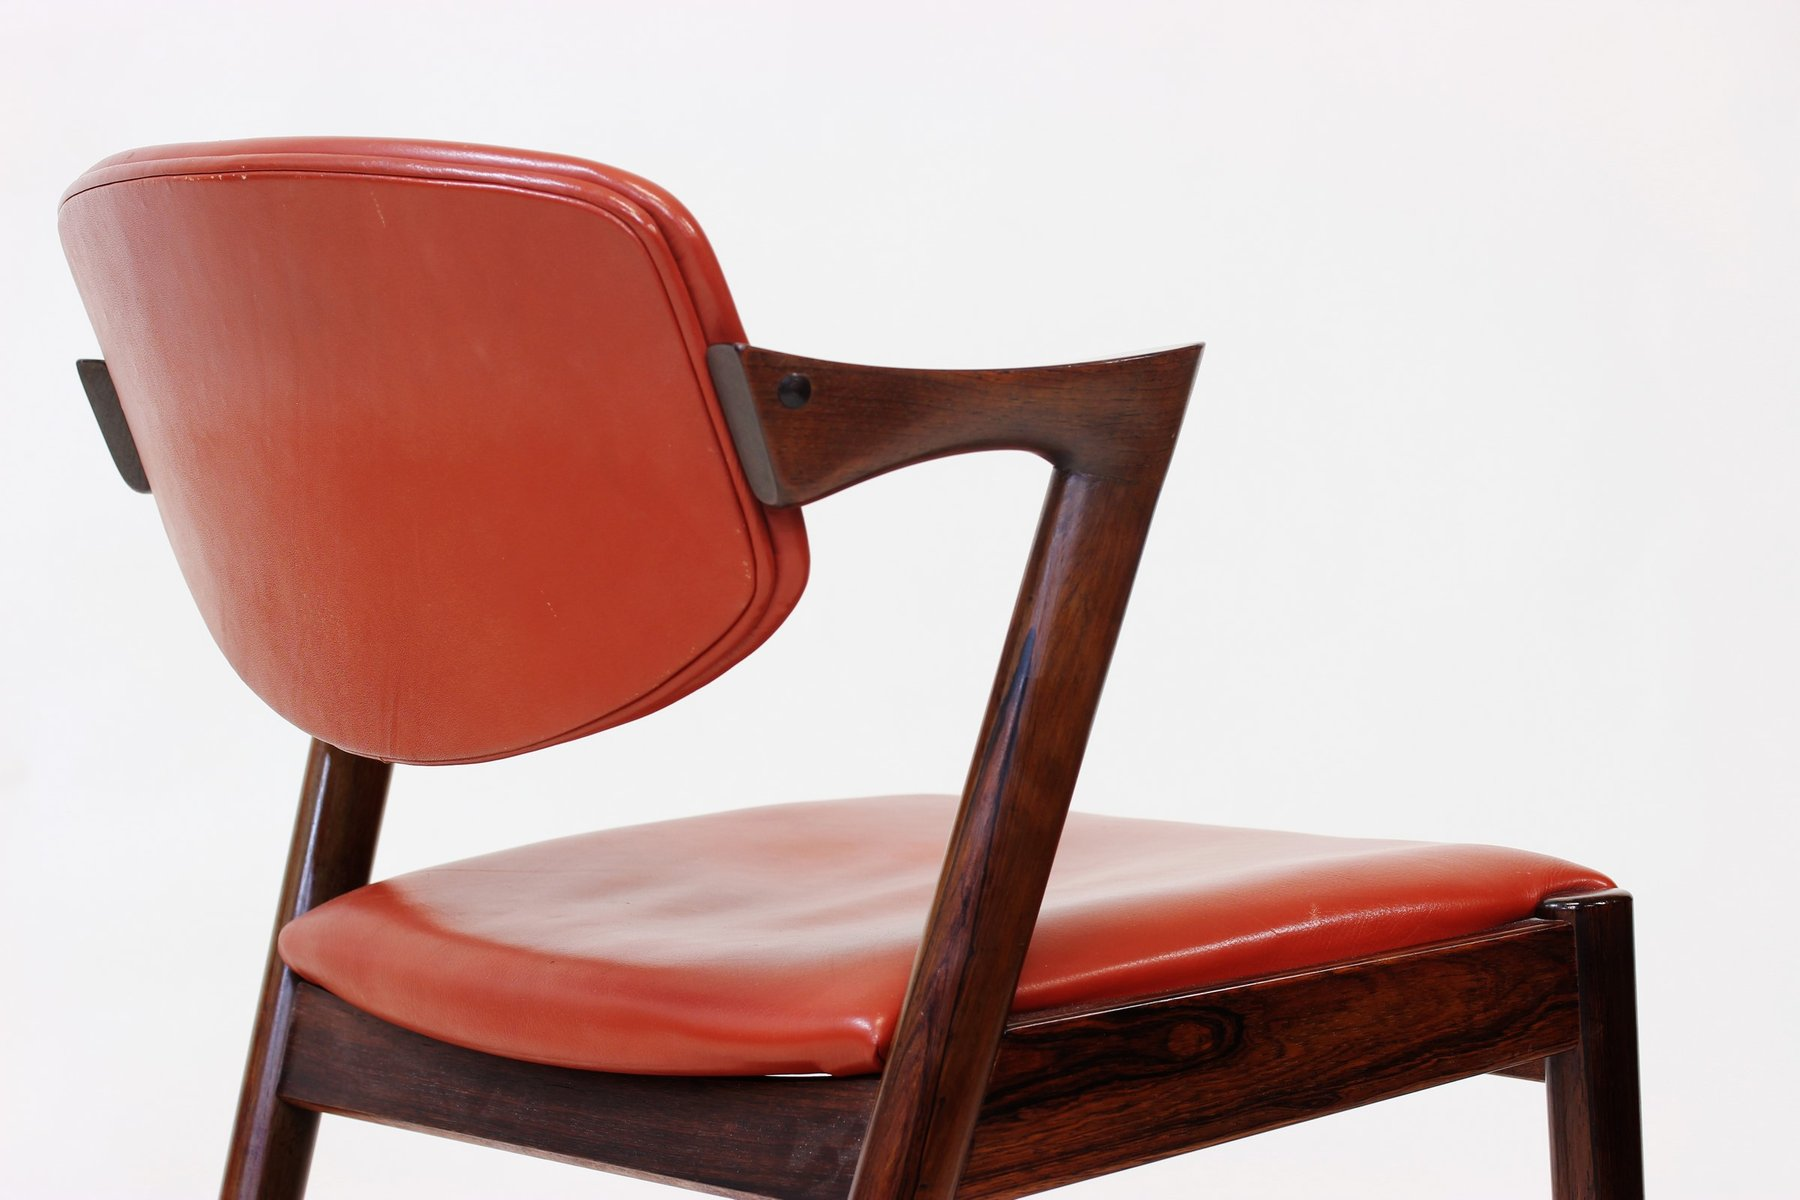 Rosewood model 42 dining chairs by kai kristiansen for schou andersen 1965 set of 6 for sale - Kai kristiansen chairs ...